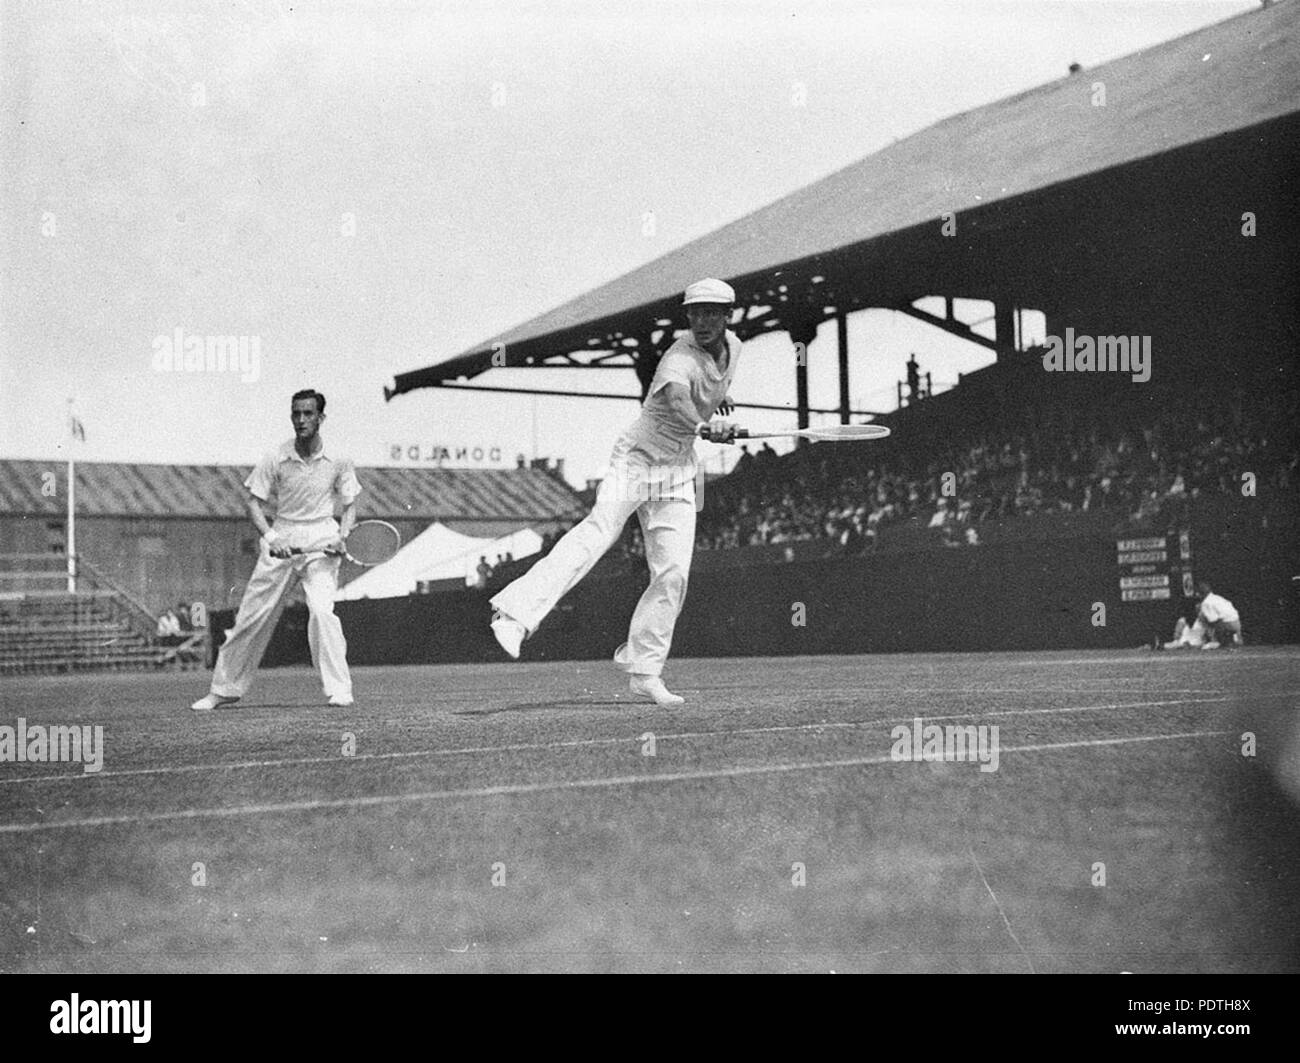 169 SLNSW 51714 Fred Perry and G Pat Hughes - Stock Image